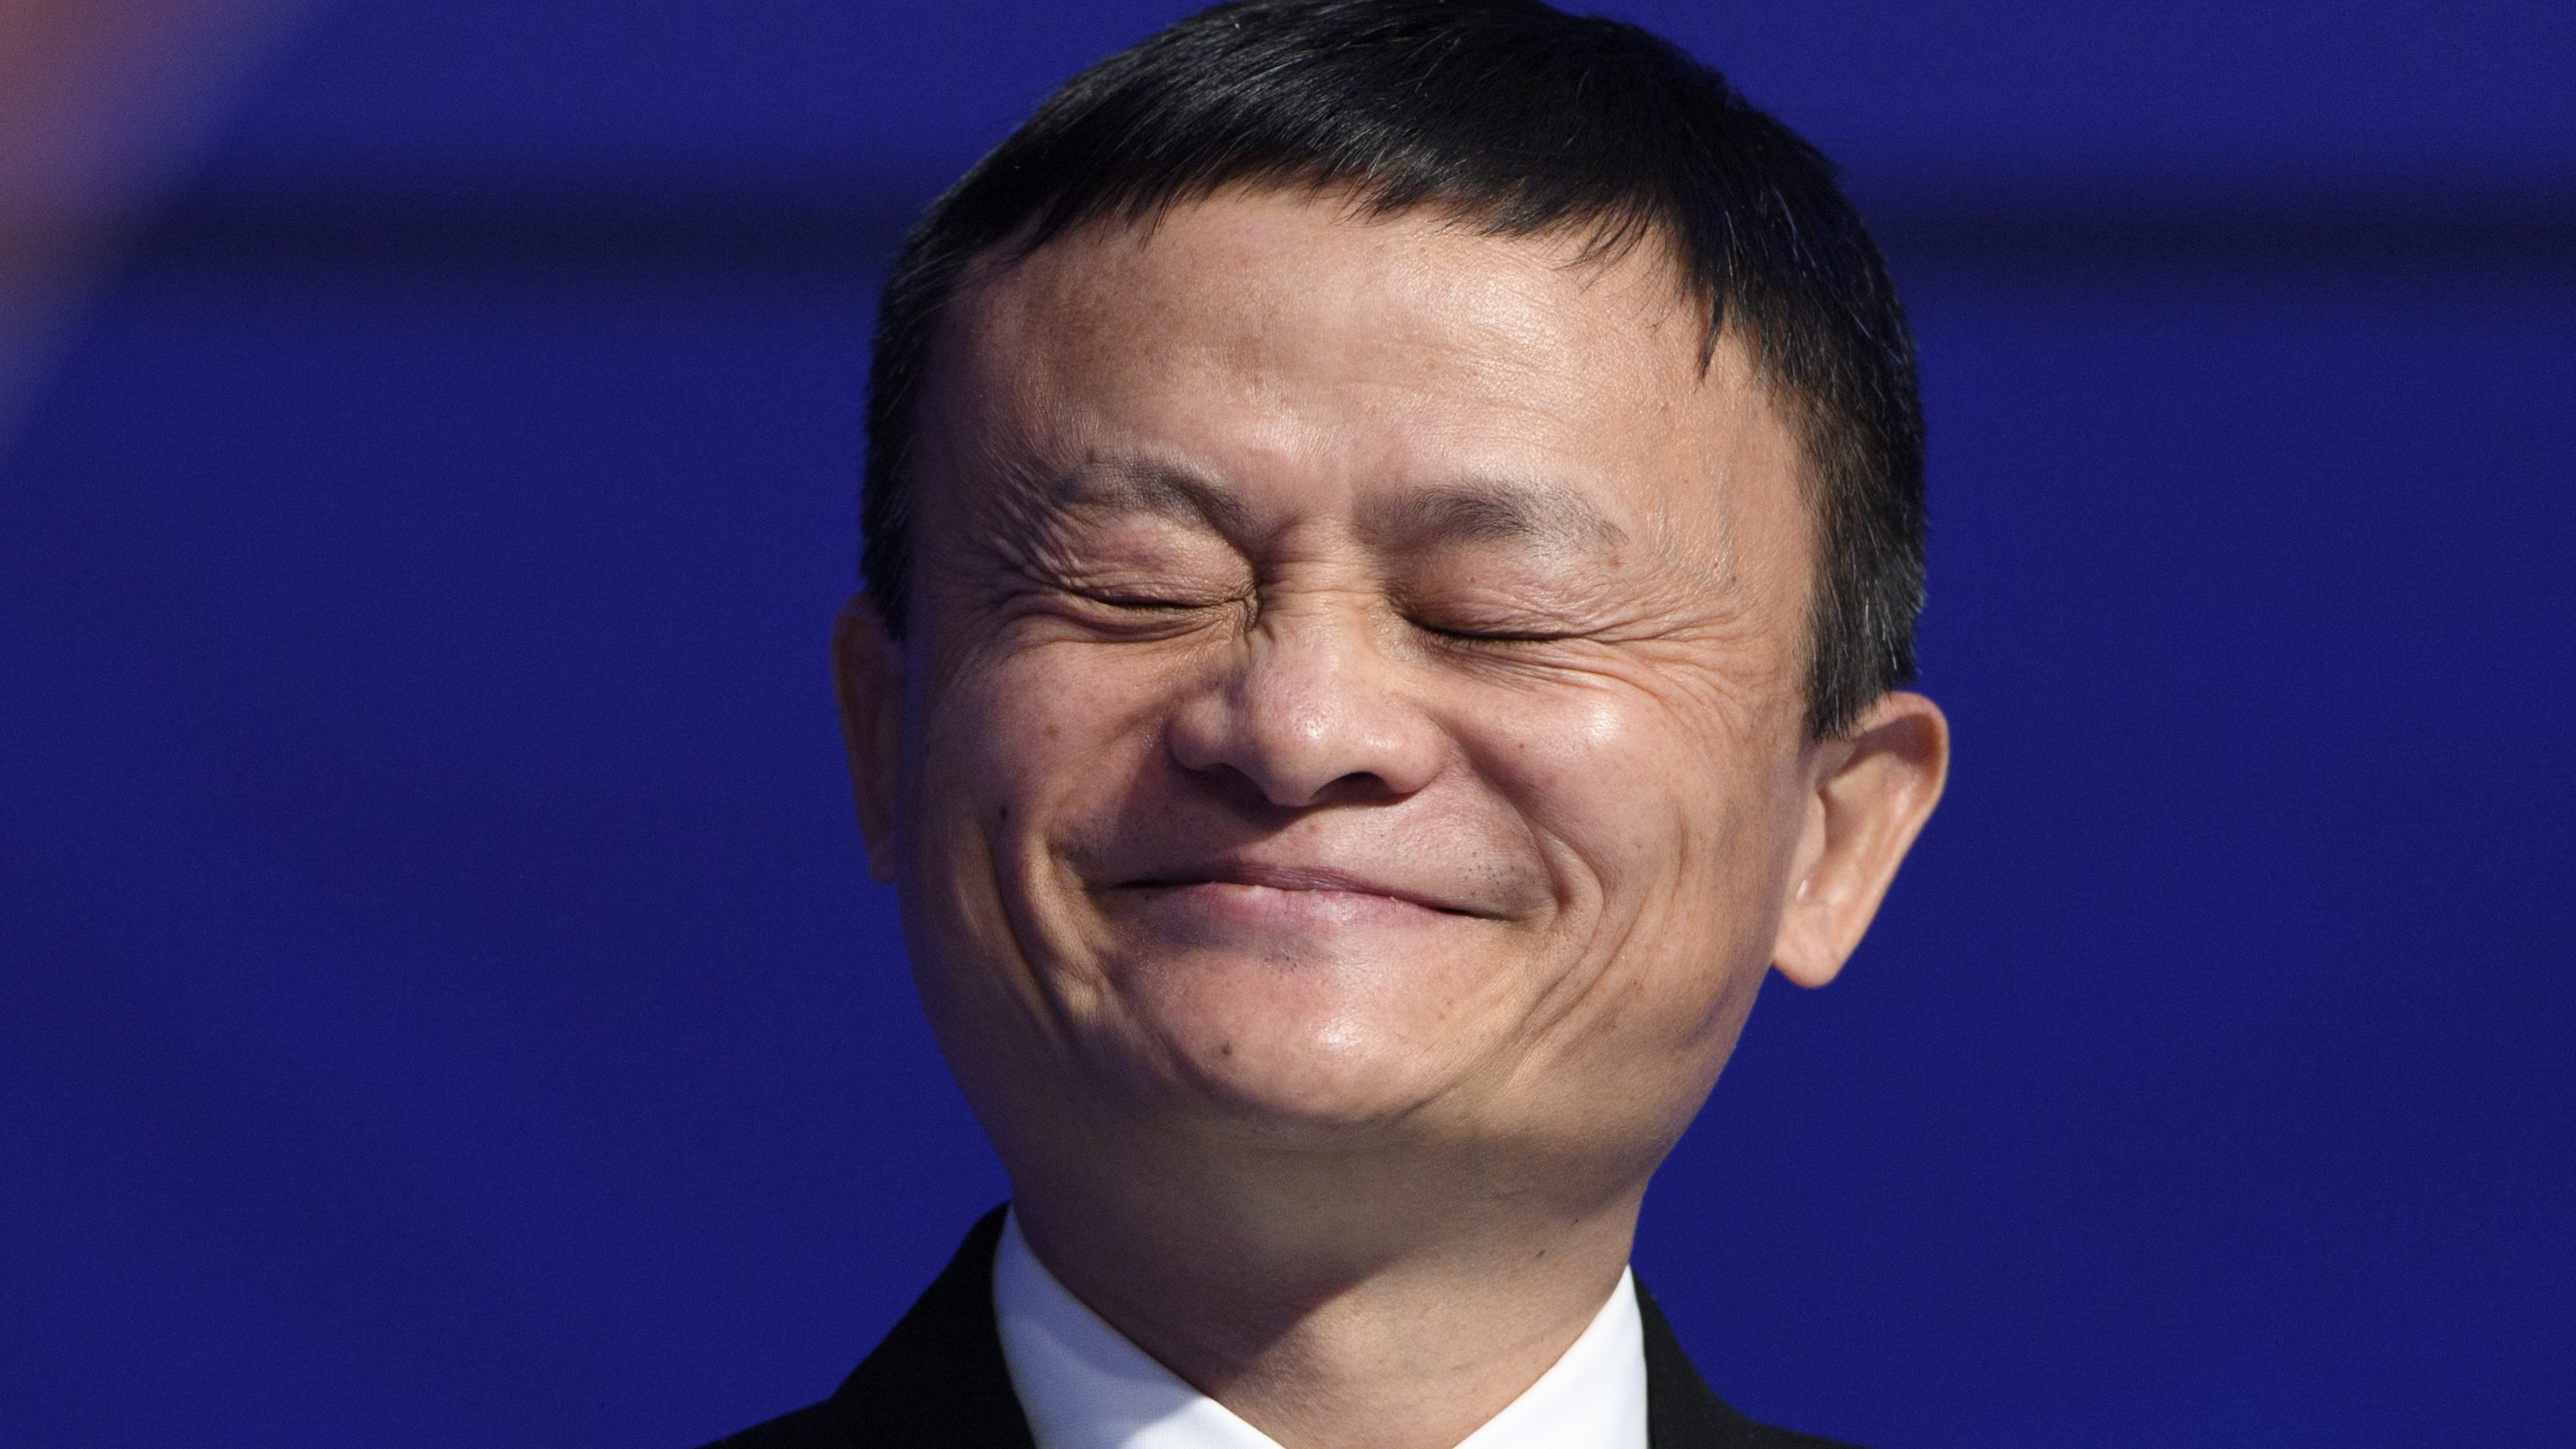 China's Jack Ma, Founder and Executive Chairman of Alibaba Group smiles during a panel session during the 47th annual meeting of the World Economic Forum, WEF, in Davos, Switzerland, 18 January 2017. The meeting brings together enterpreneurs, scientists, chief executive and political leaders in Davos January 17 to 20.